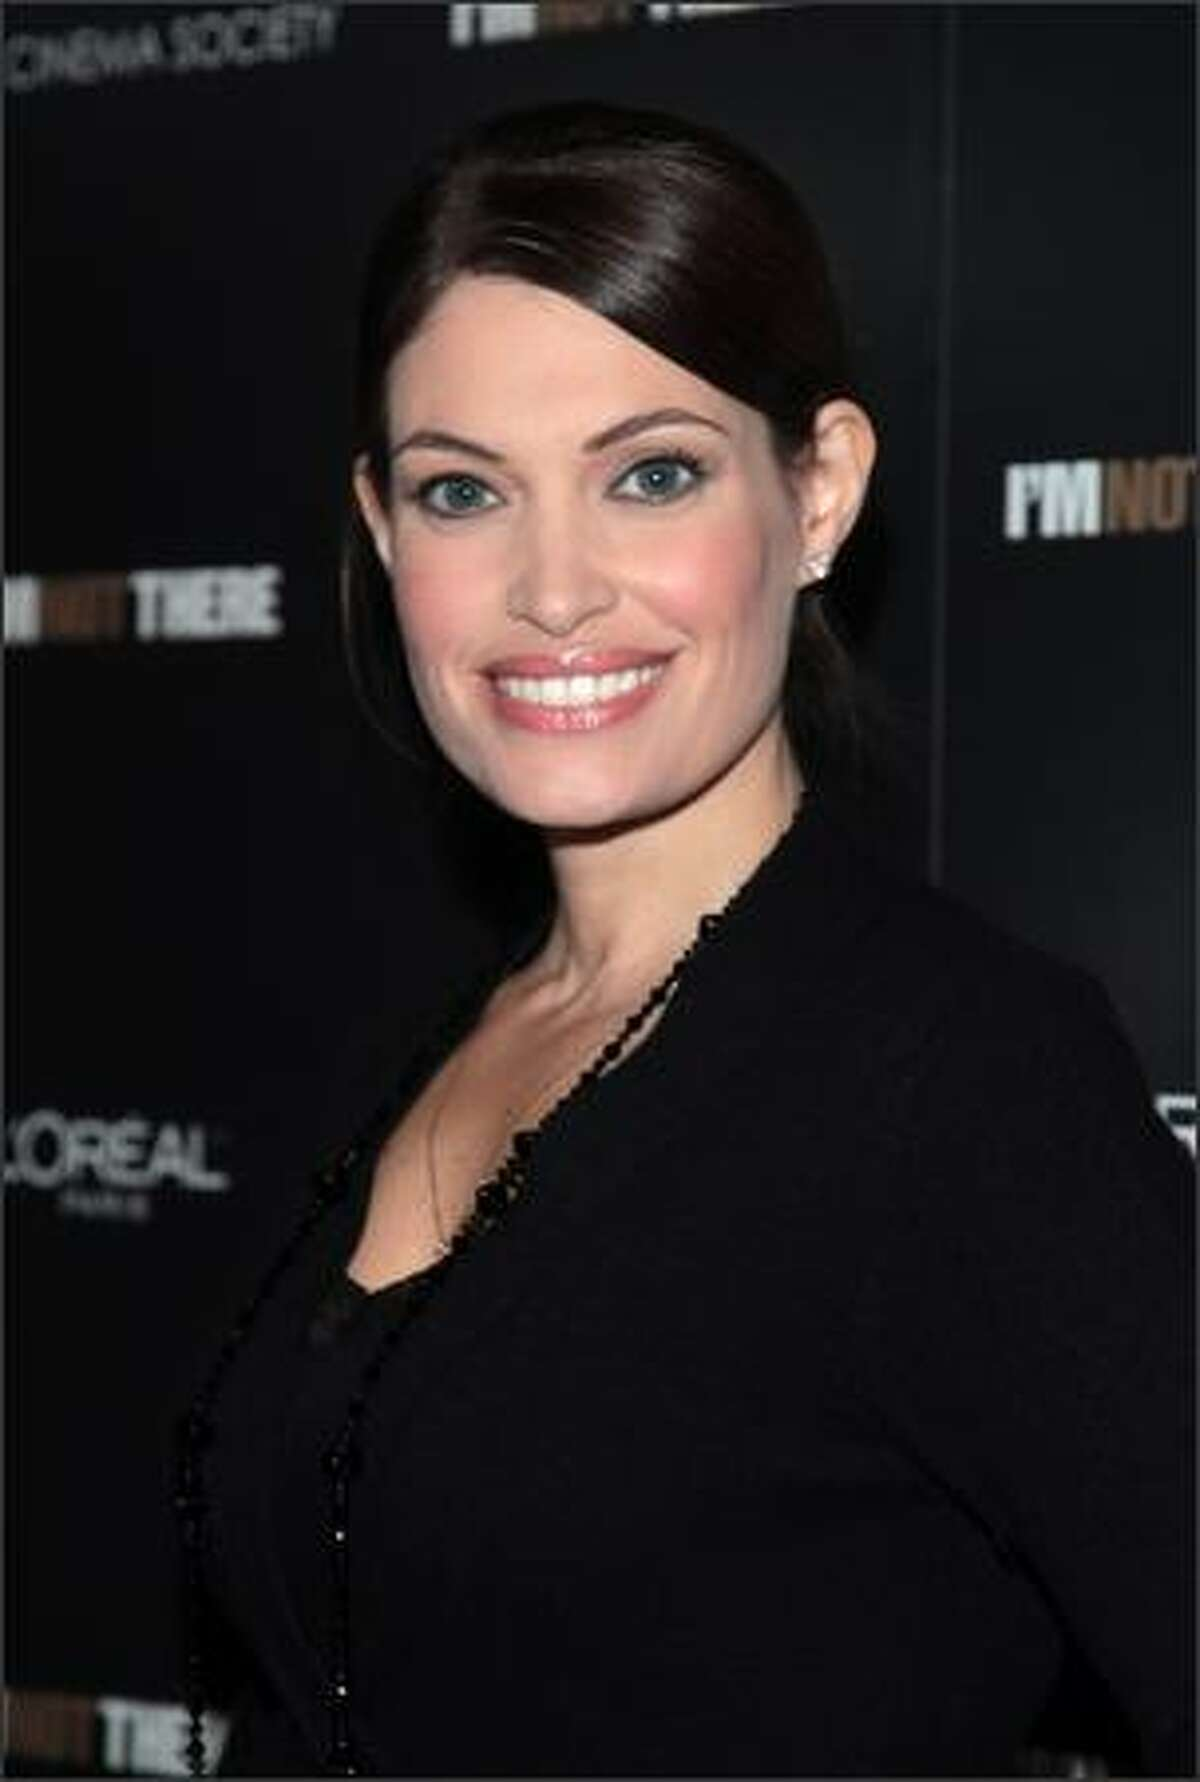 """News Anchor Kimberly Guilfoyle-Villency attends the New York premiere of """"I'm Not There"""" presented by The Cinema Society and Hogan at the Chelsea West Cinemas on November 13, 2007 in New York City."""